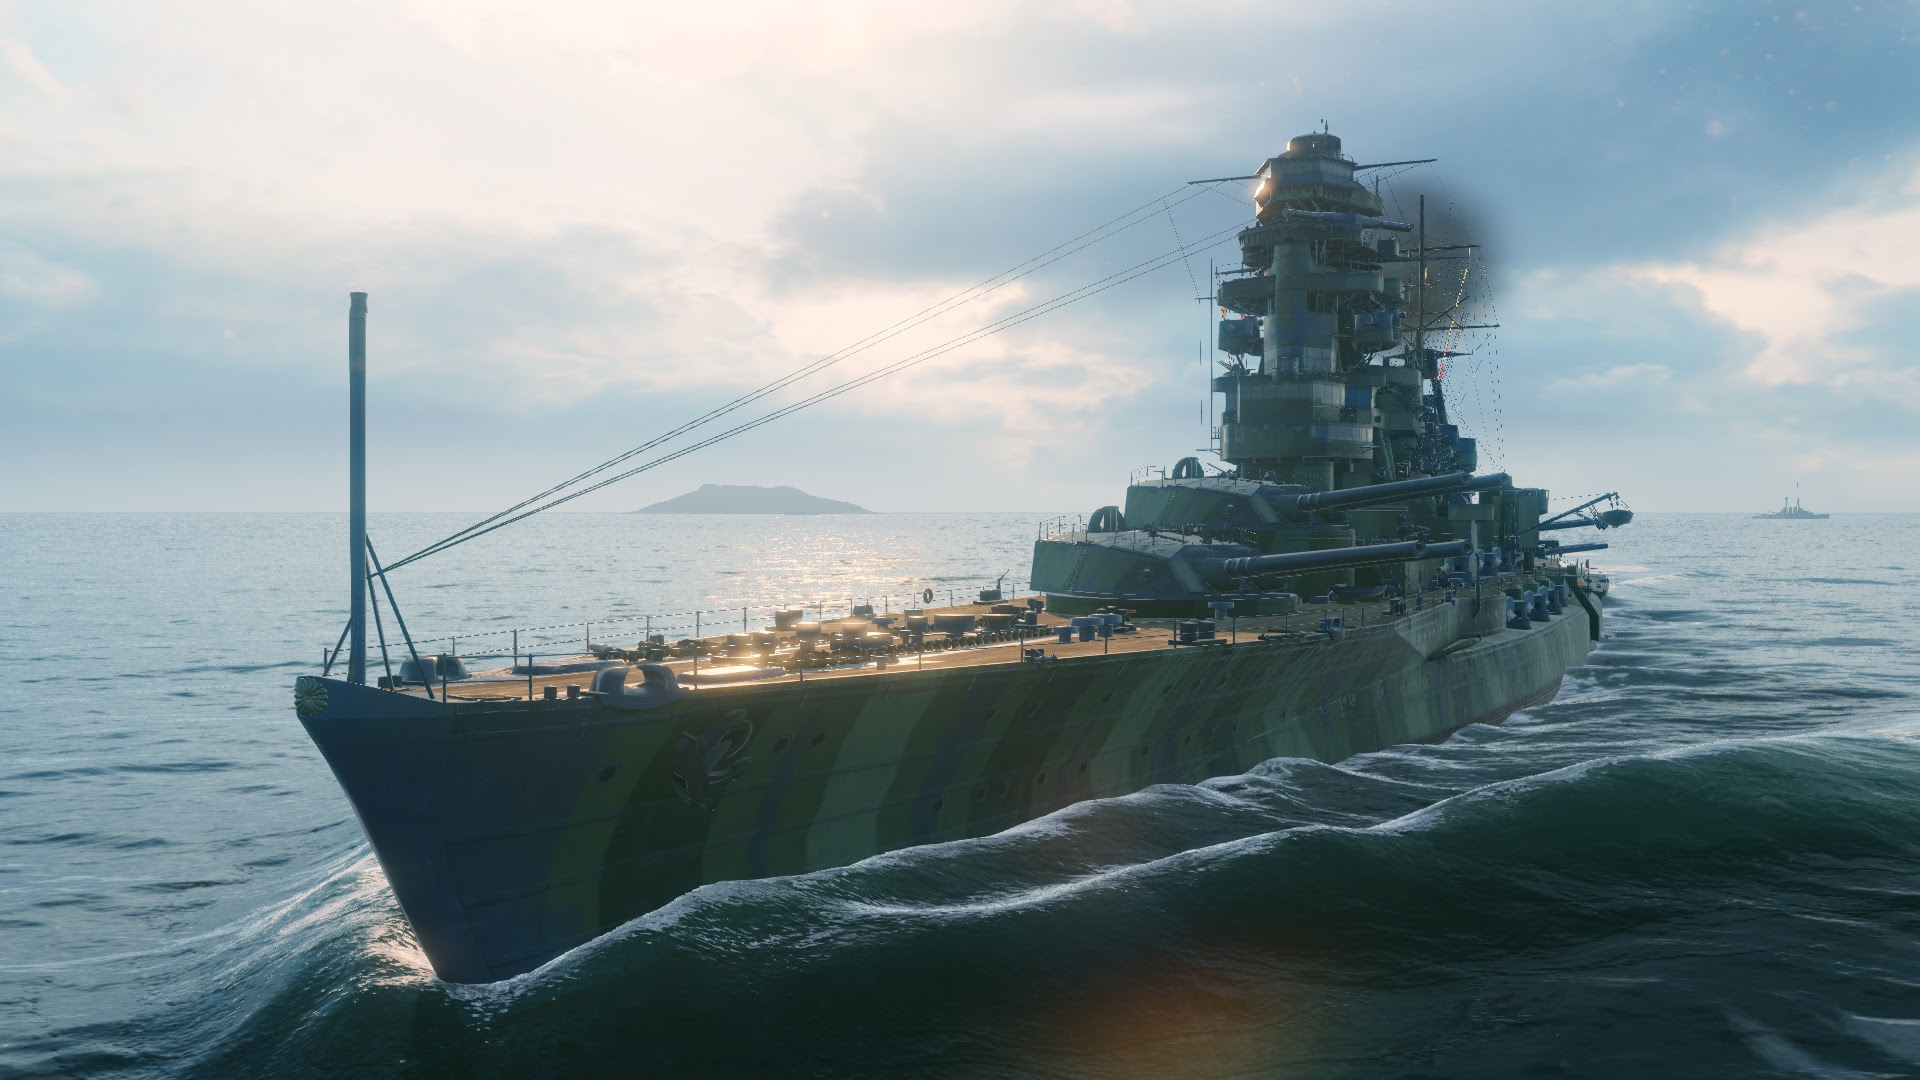 World of Warships Review - a Great Tactical Experience on the High Seas